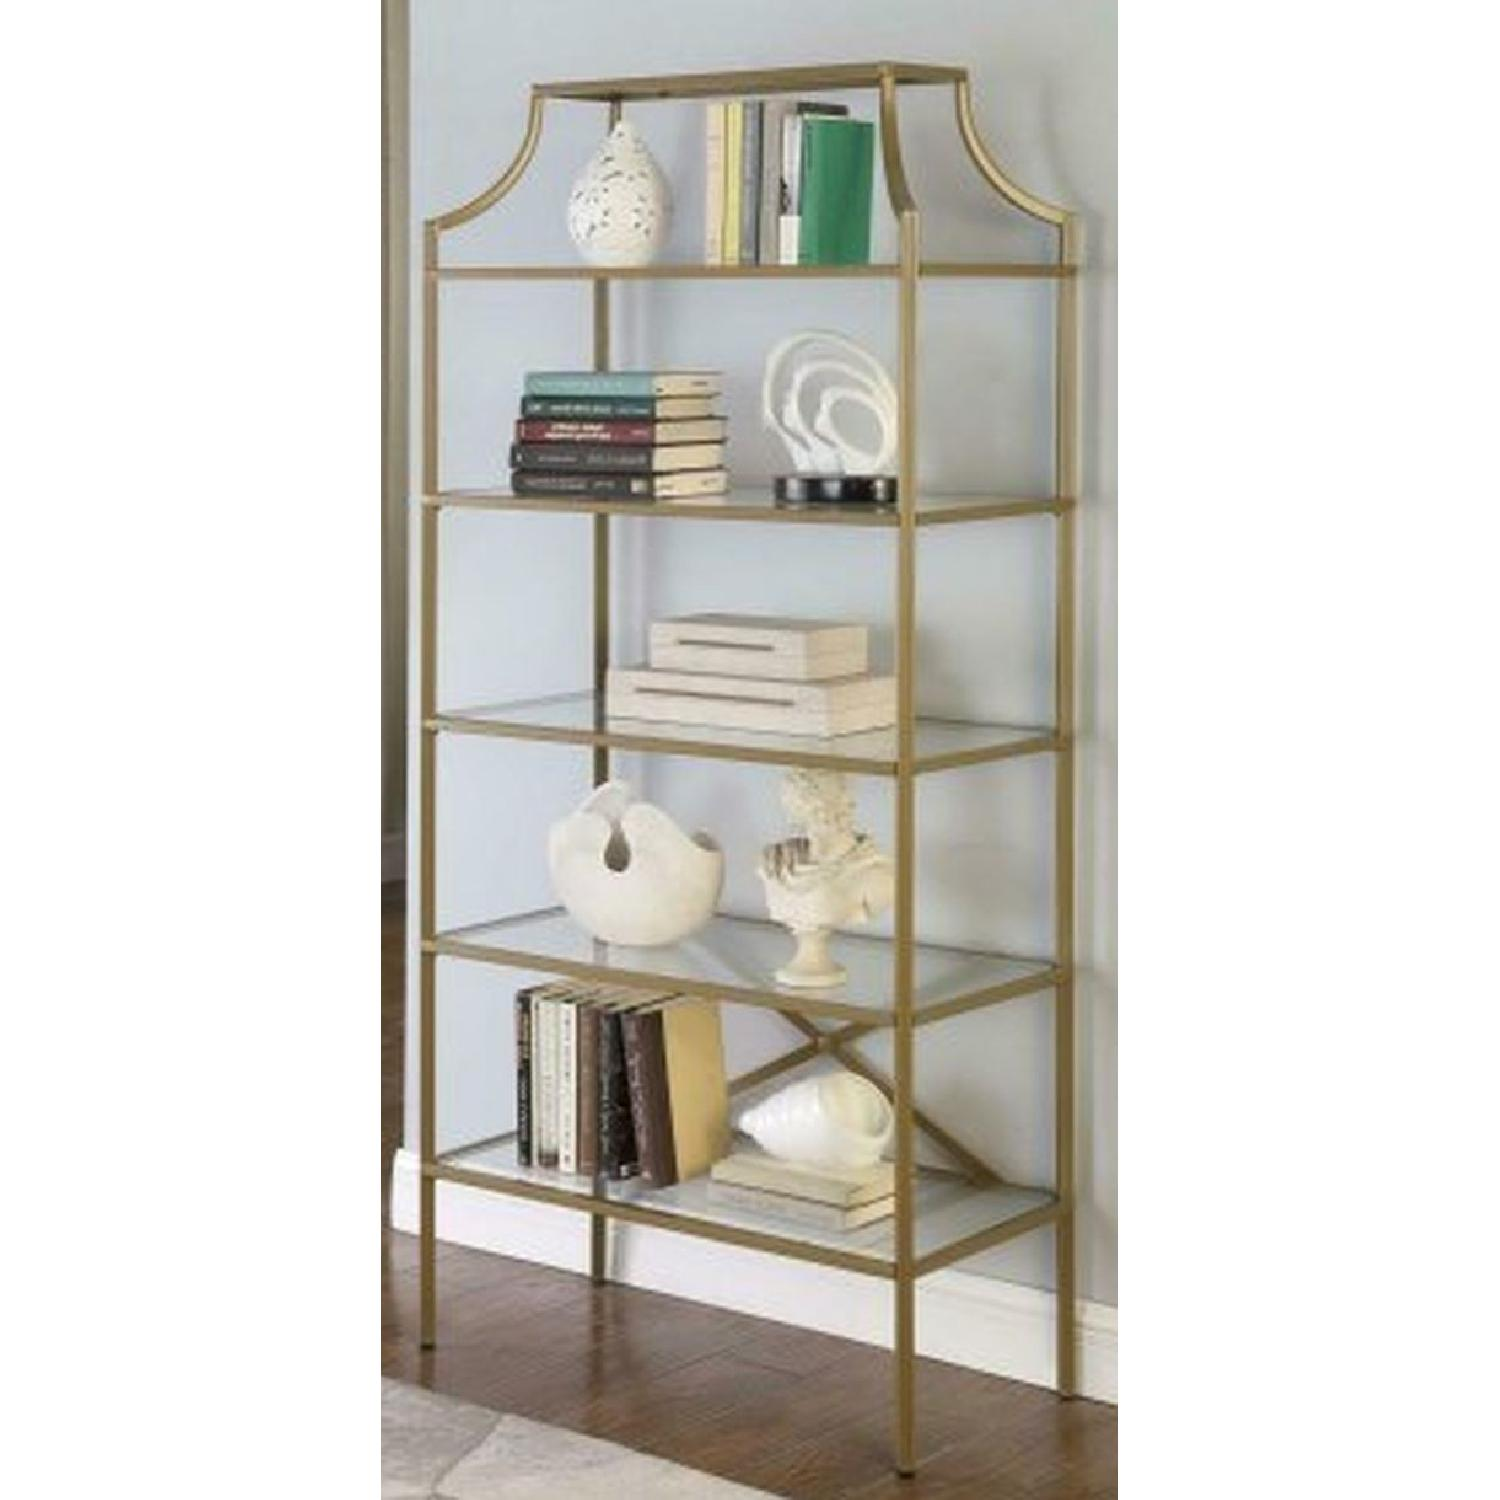 Modern Display Unit w/ Gold Frame & Tempered Glass Shelves - image-2